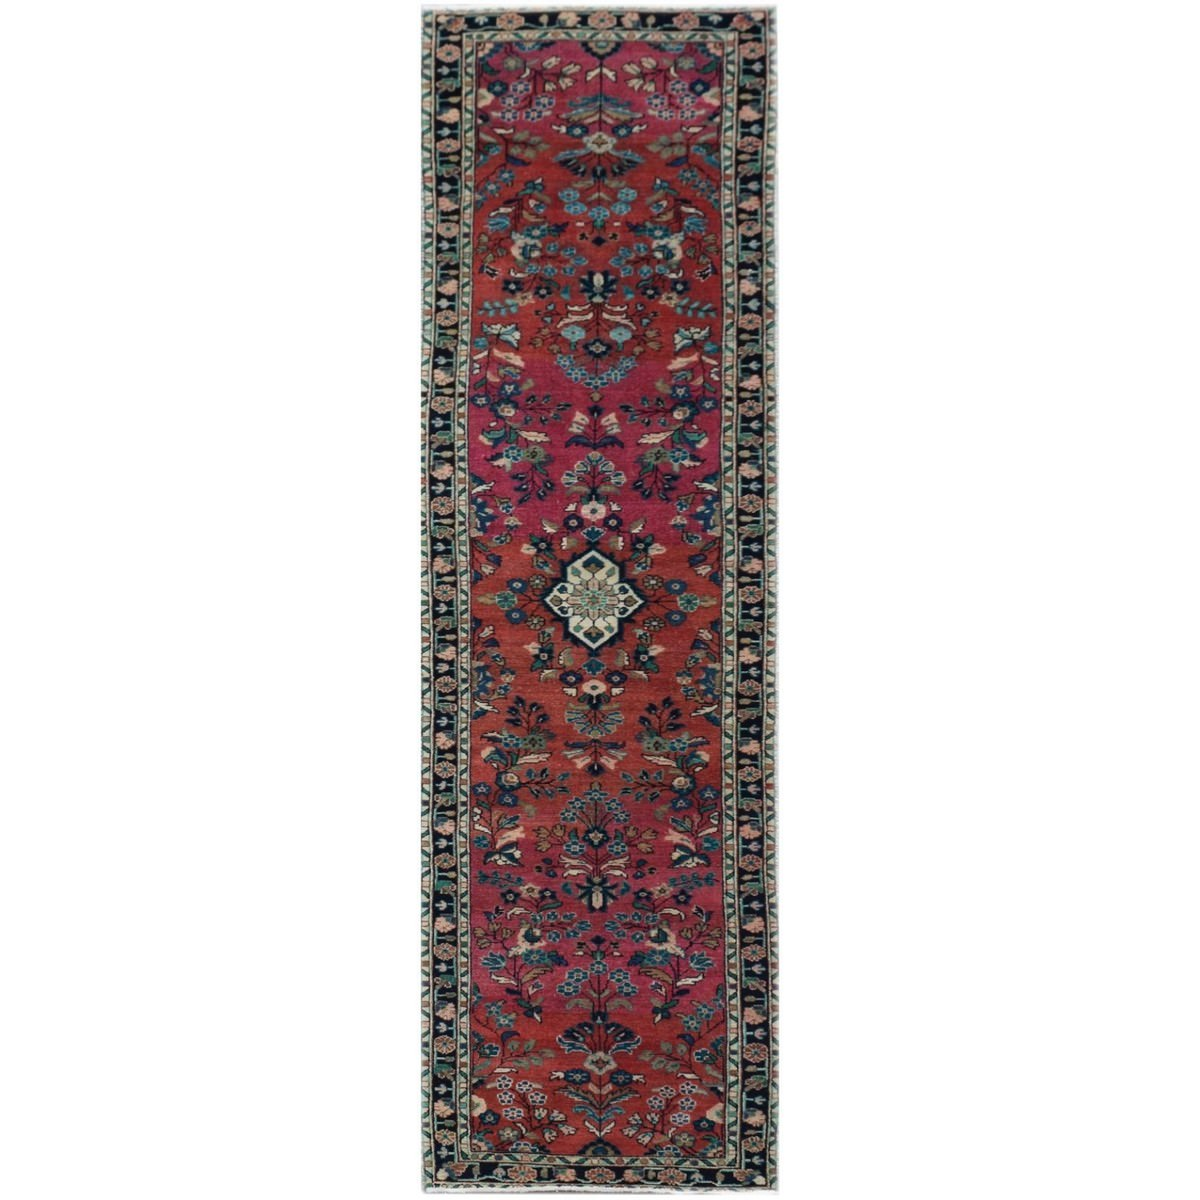 One of A Kind Mateo Hand Knotted Wool Persian Runner Rug, 355x85cm